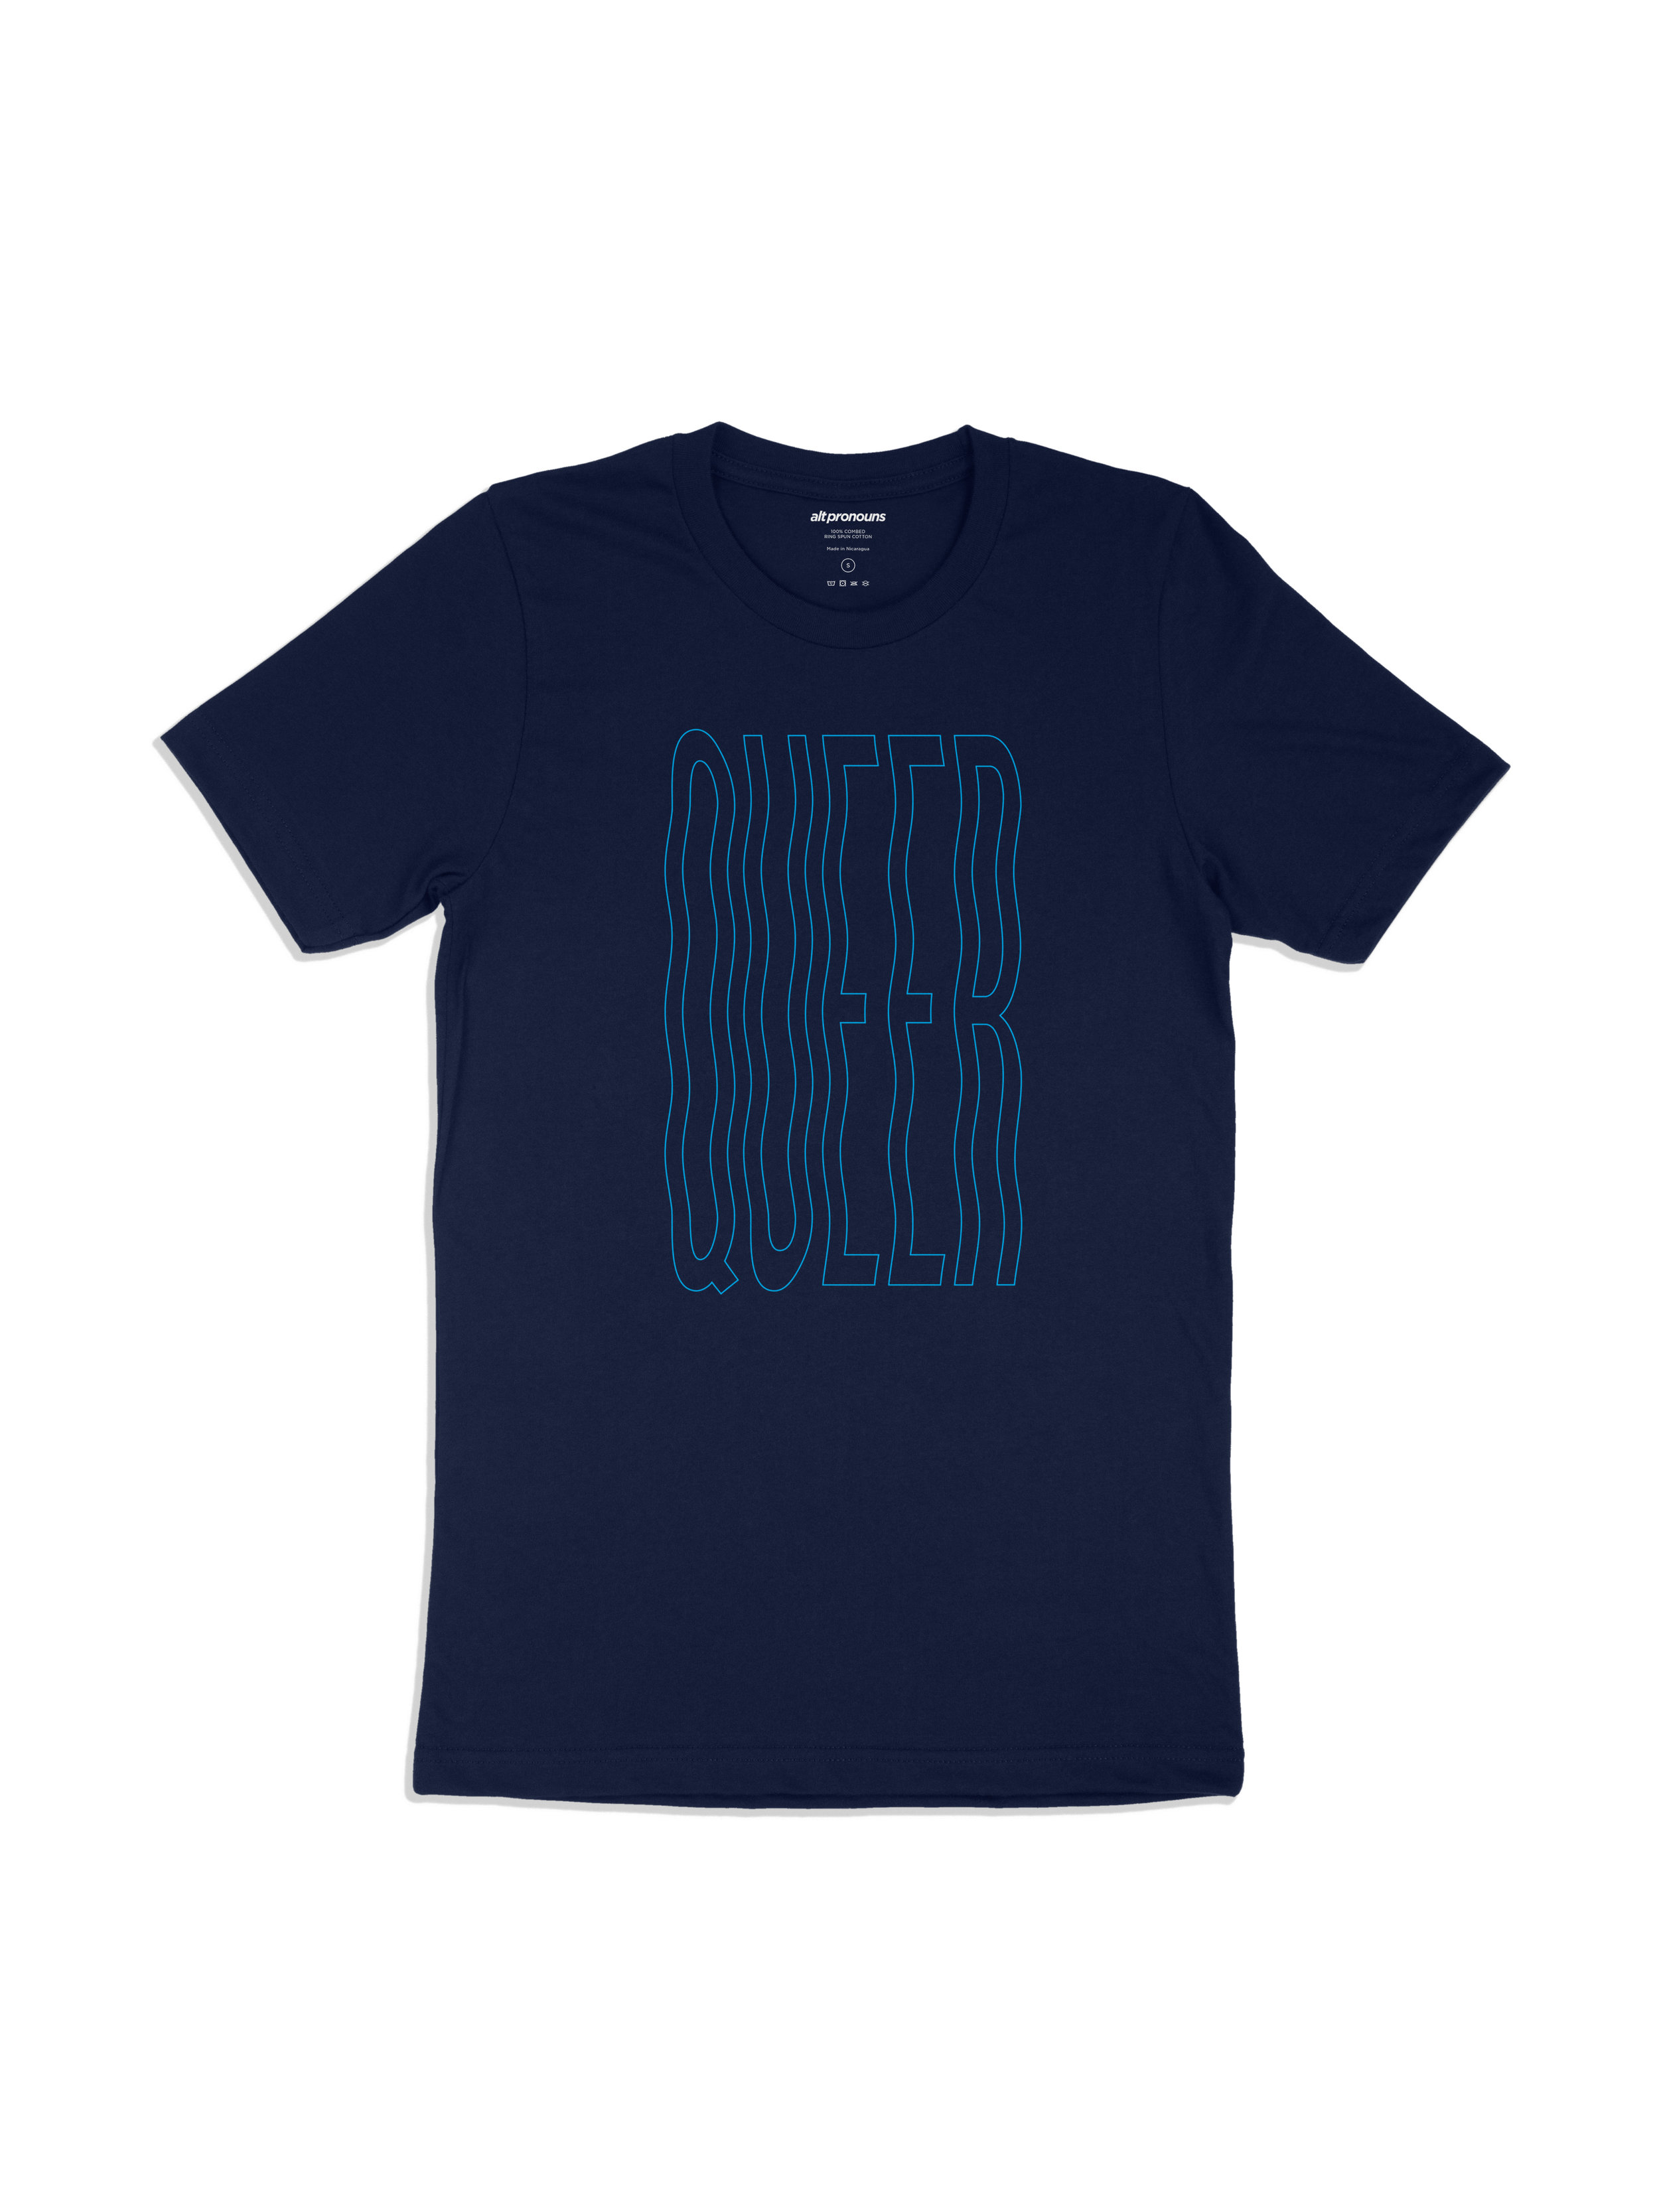 Alt Pronouns Queer Vibes Tee in Navy